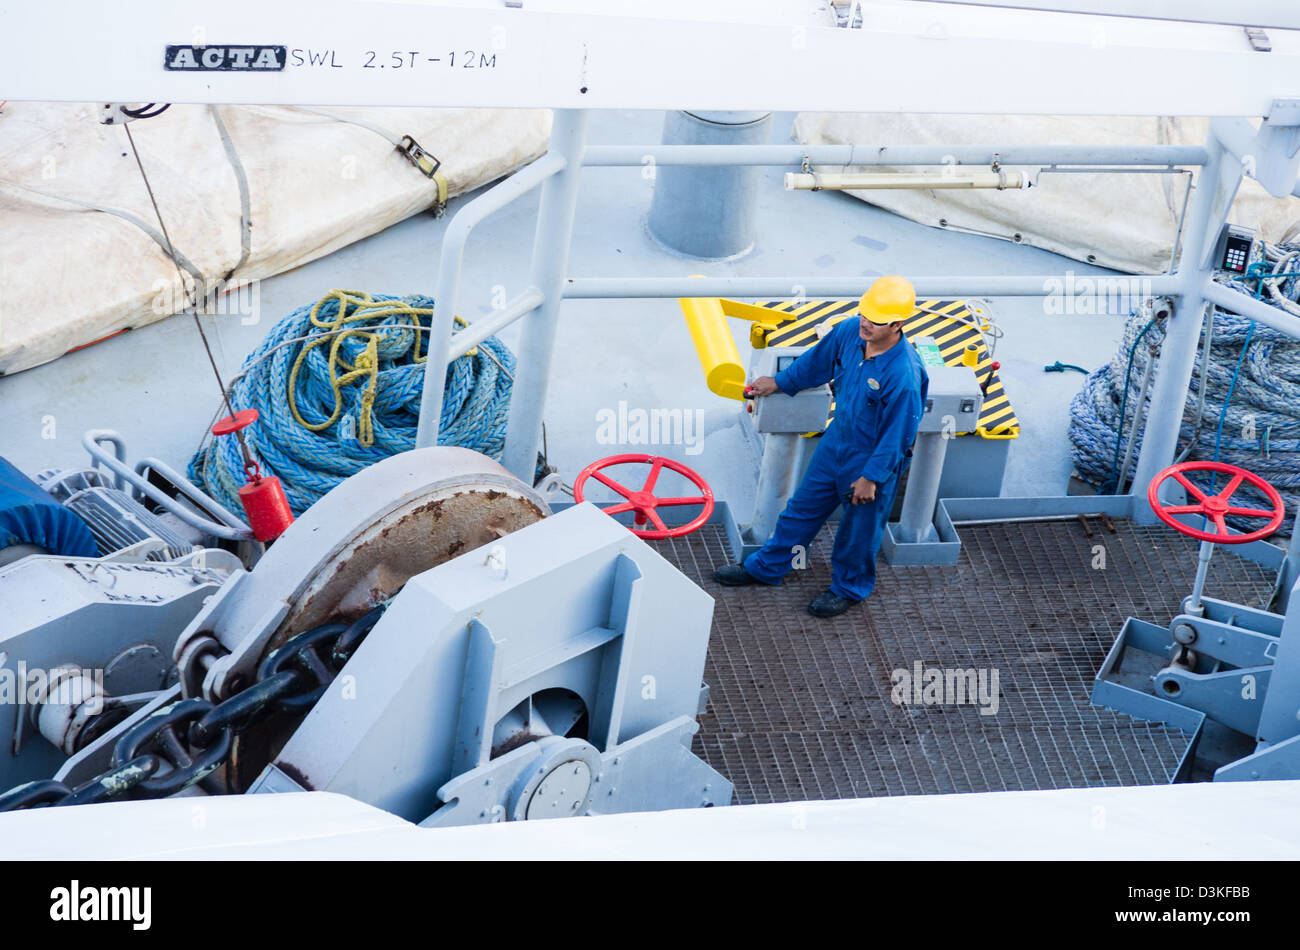 Samana, Dominican Republic, Crew members prepare to drop the anchor of a large cruise ship - Stock Image